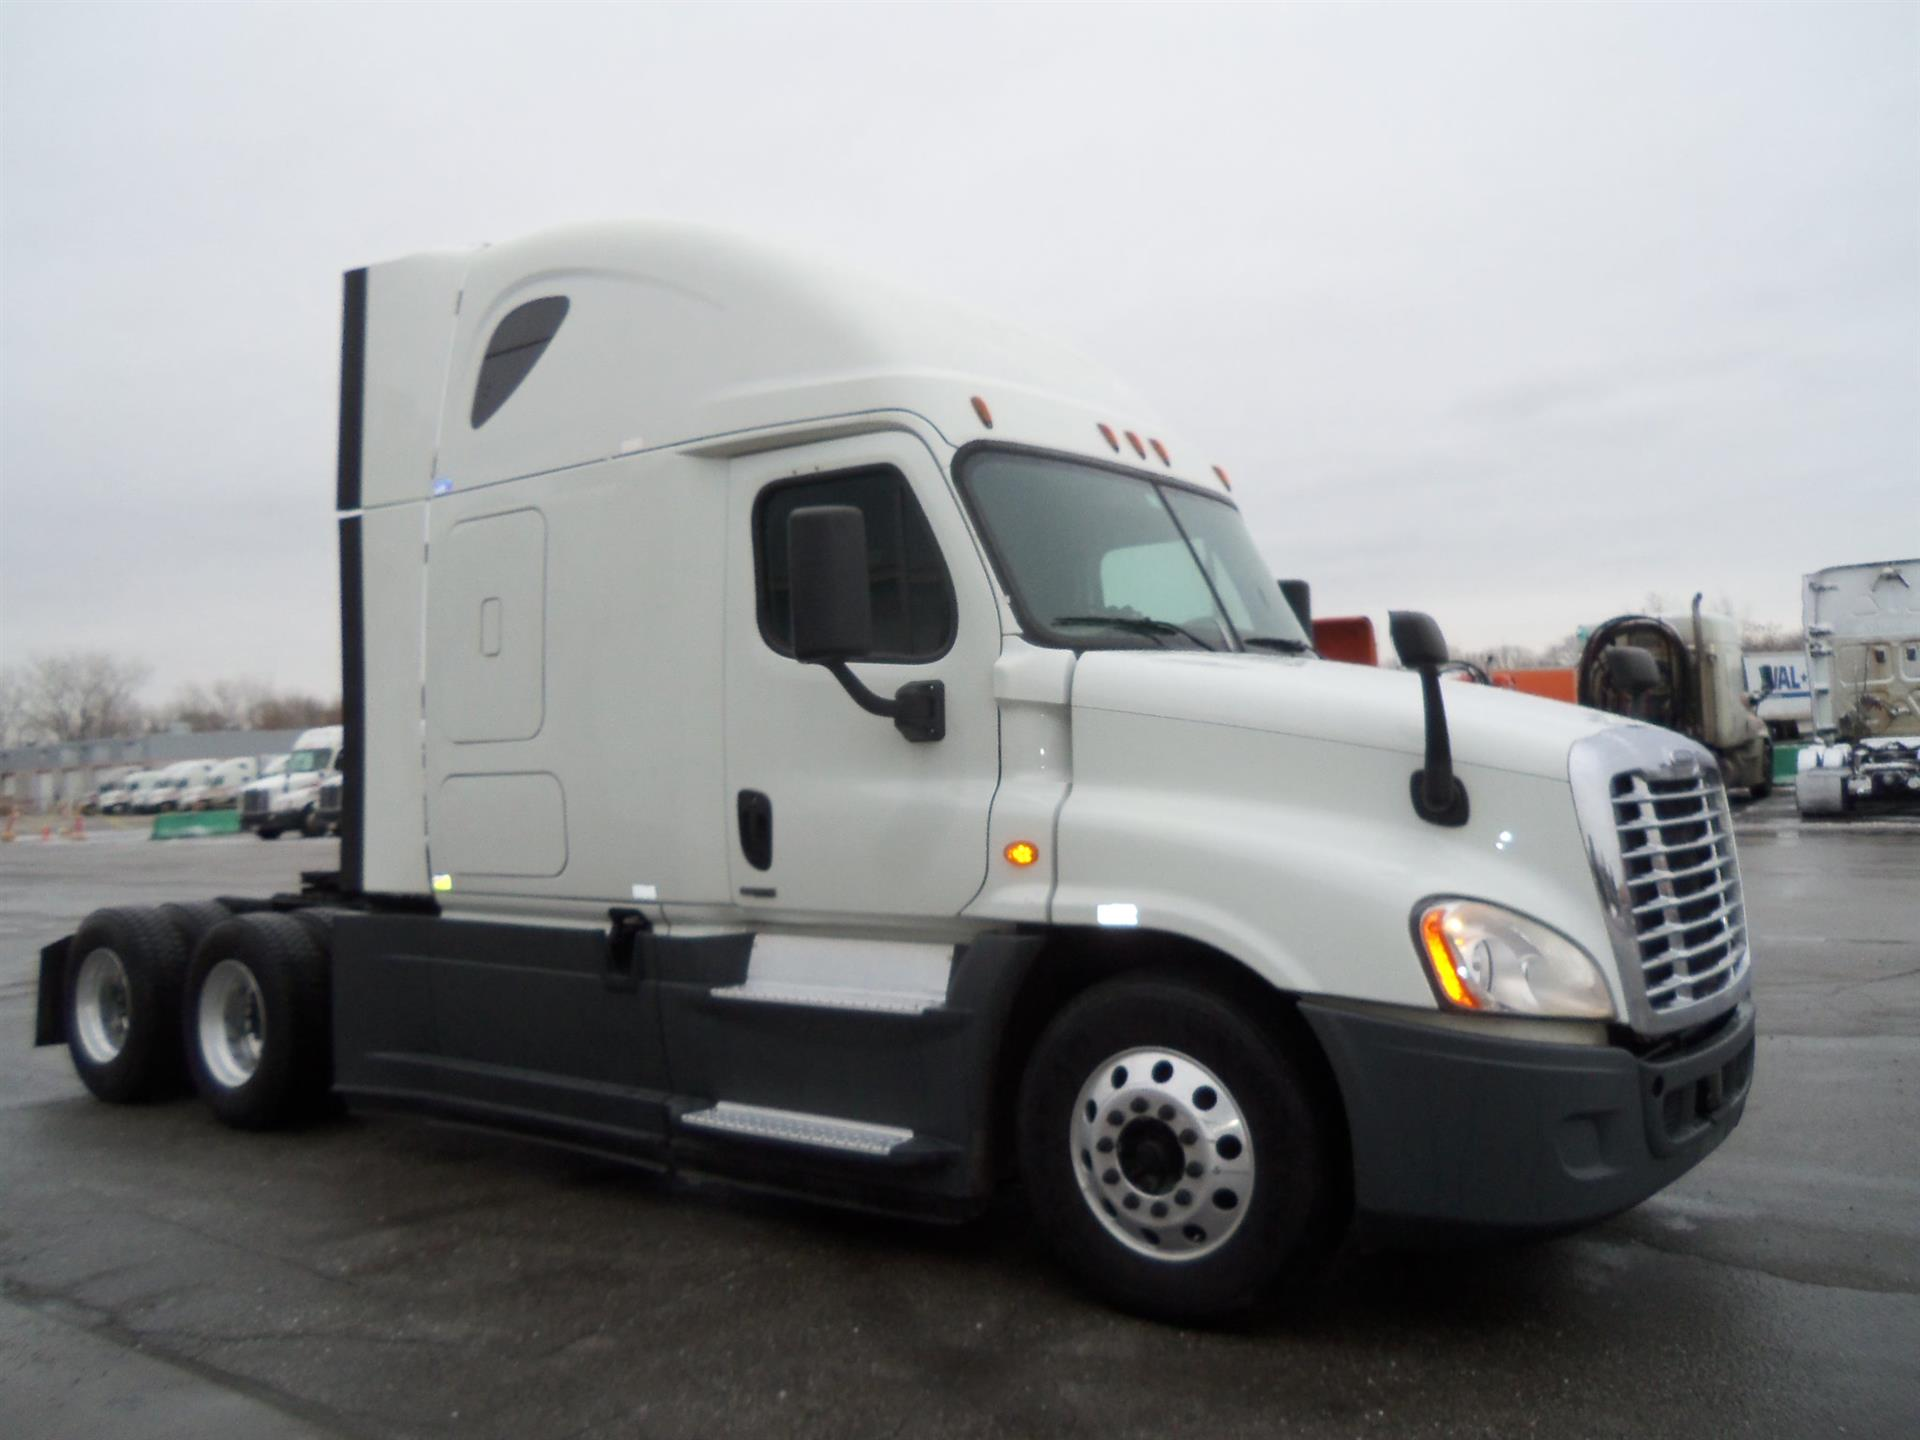 USED 2015 FREIGHTLINER CASCADIA SLEEPER TRUCK #136235